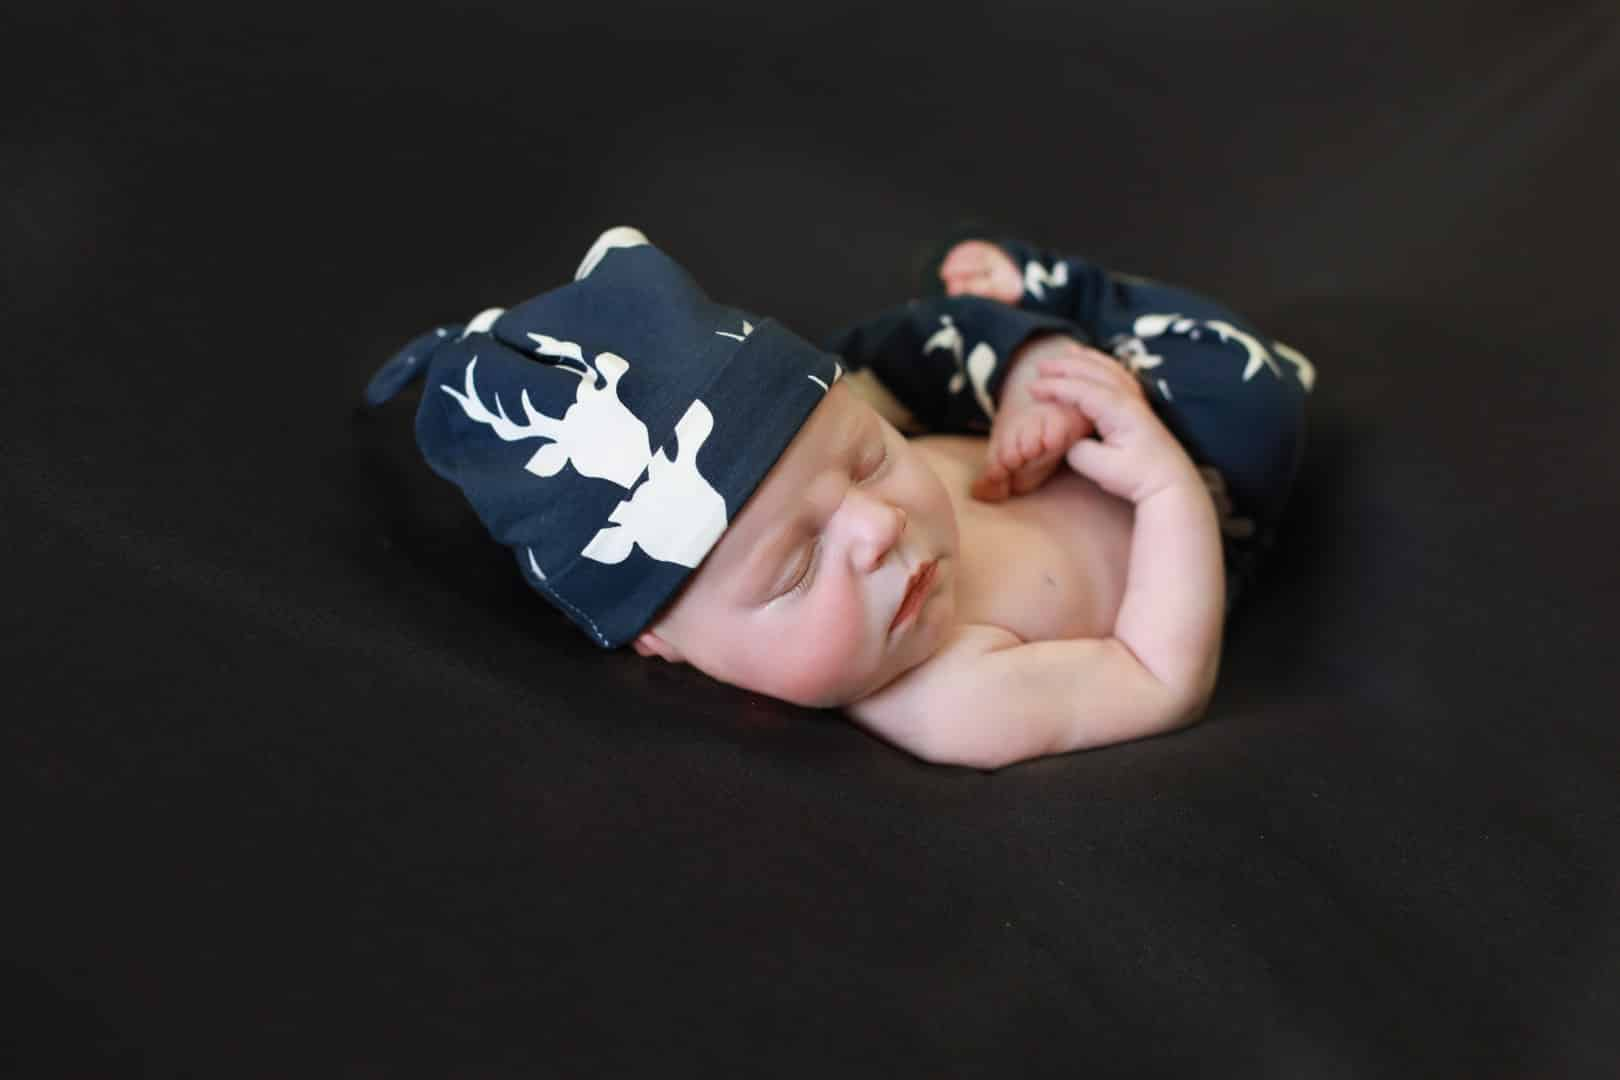 baby sleeping, grabbing foot, navy blue deer hat and pants